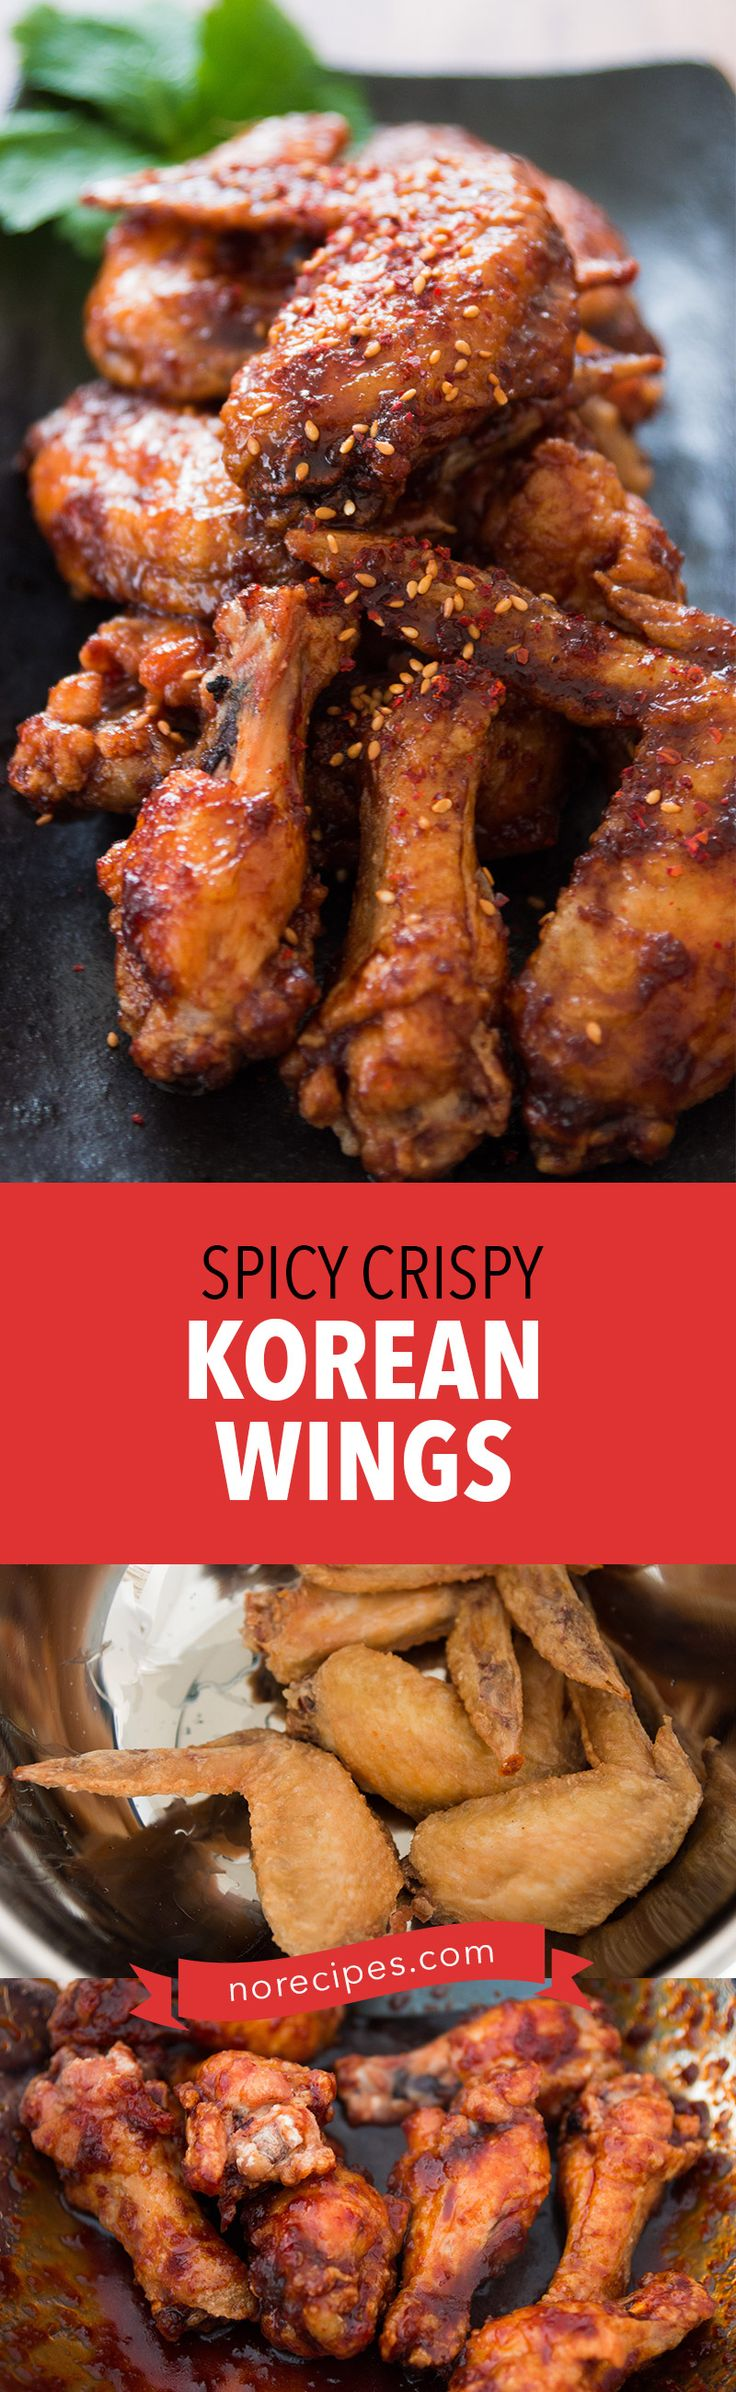 Get the secret to making crackly skinned Korean Fried Chicken (양념치킨) with a sweet and spicy glaze at home with this crispy Korean wing recipe. #friedchicken #koreanfood #wings #partyideas